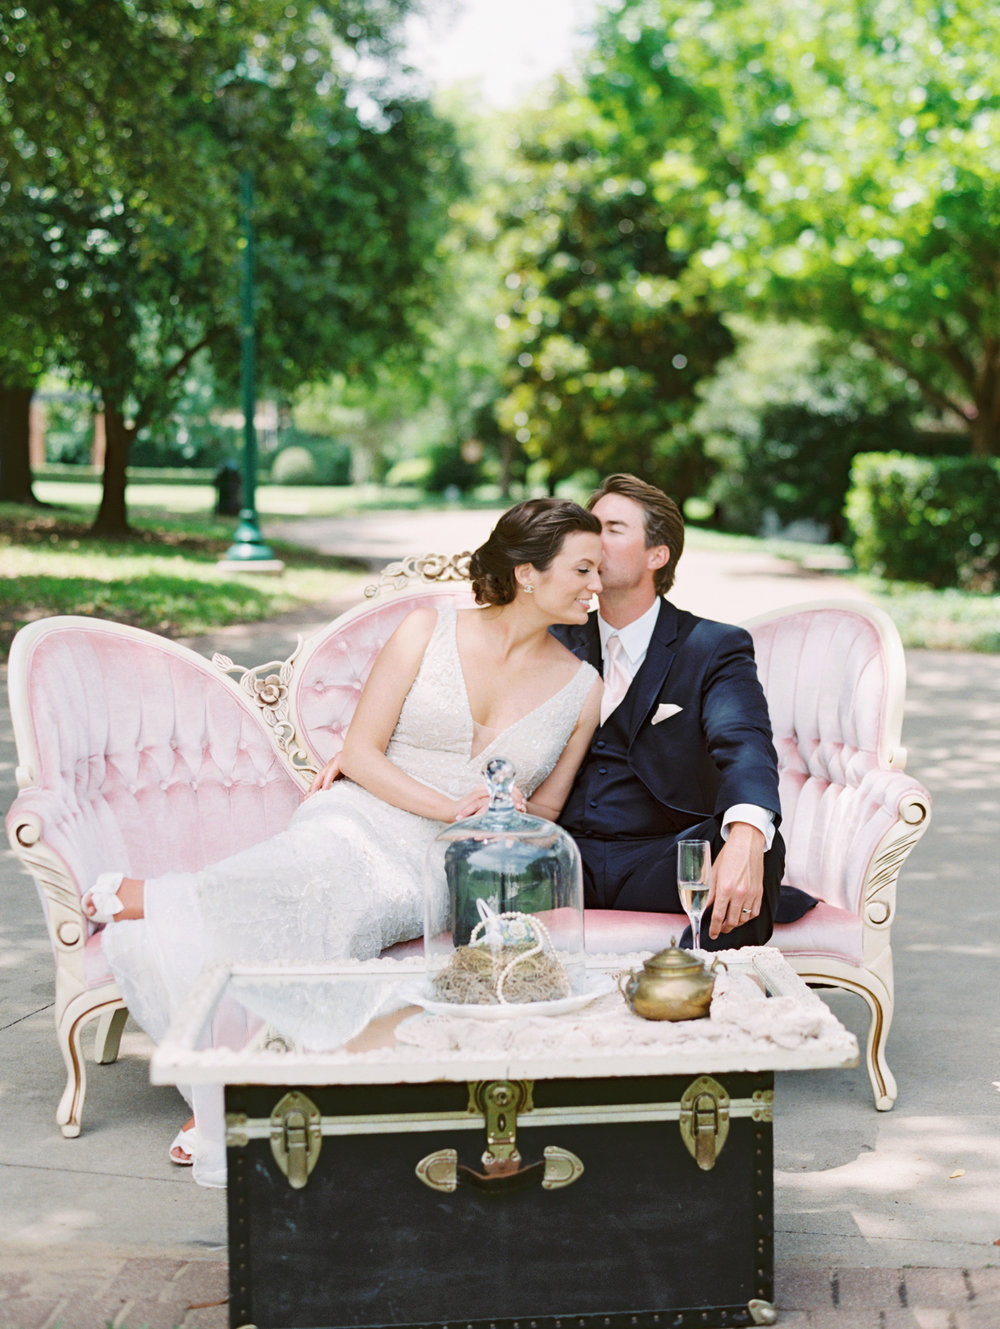 Meagan + Jacob = Brunch Garden Wedding at Arlington Hall .